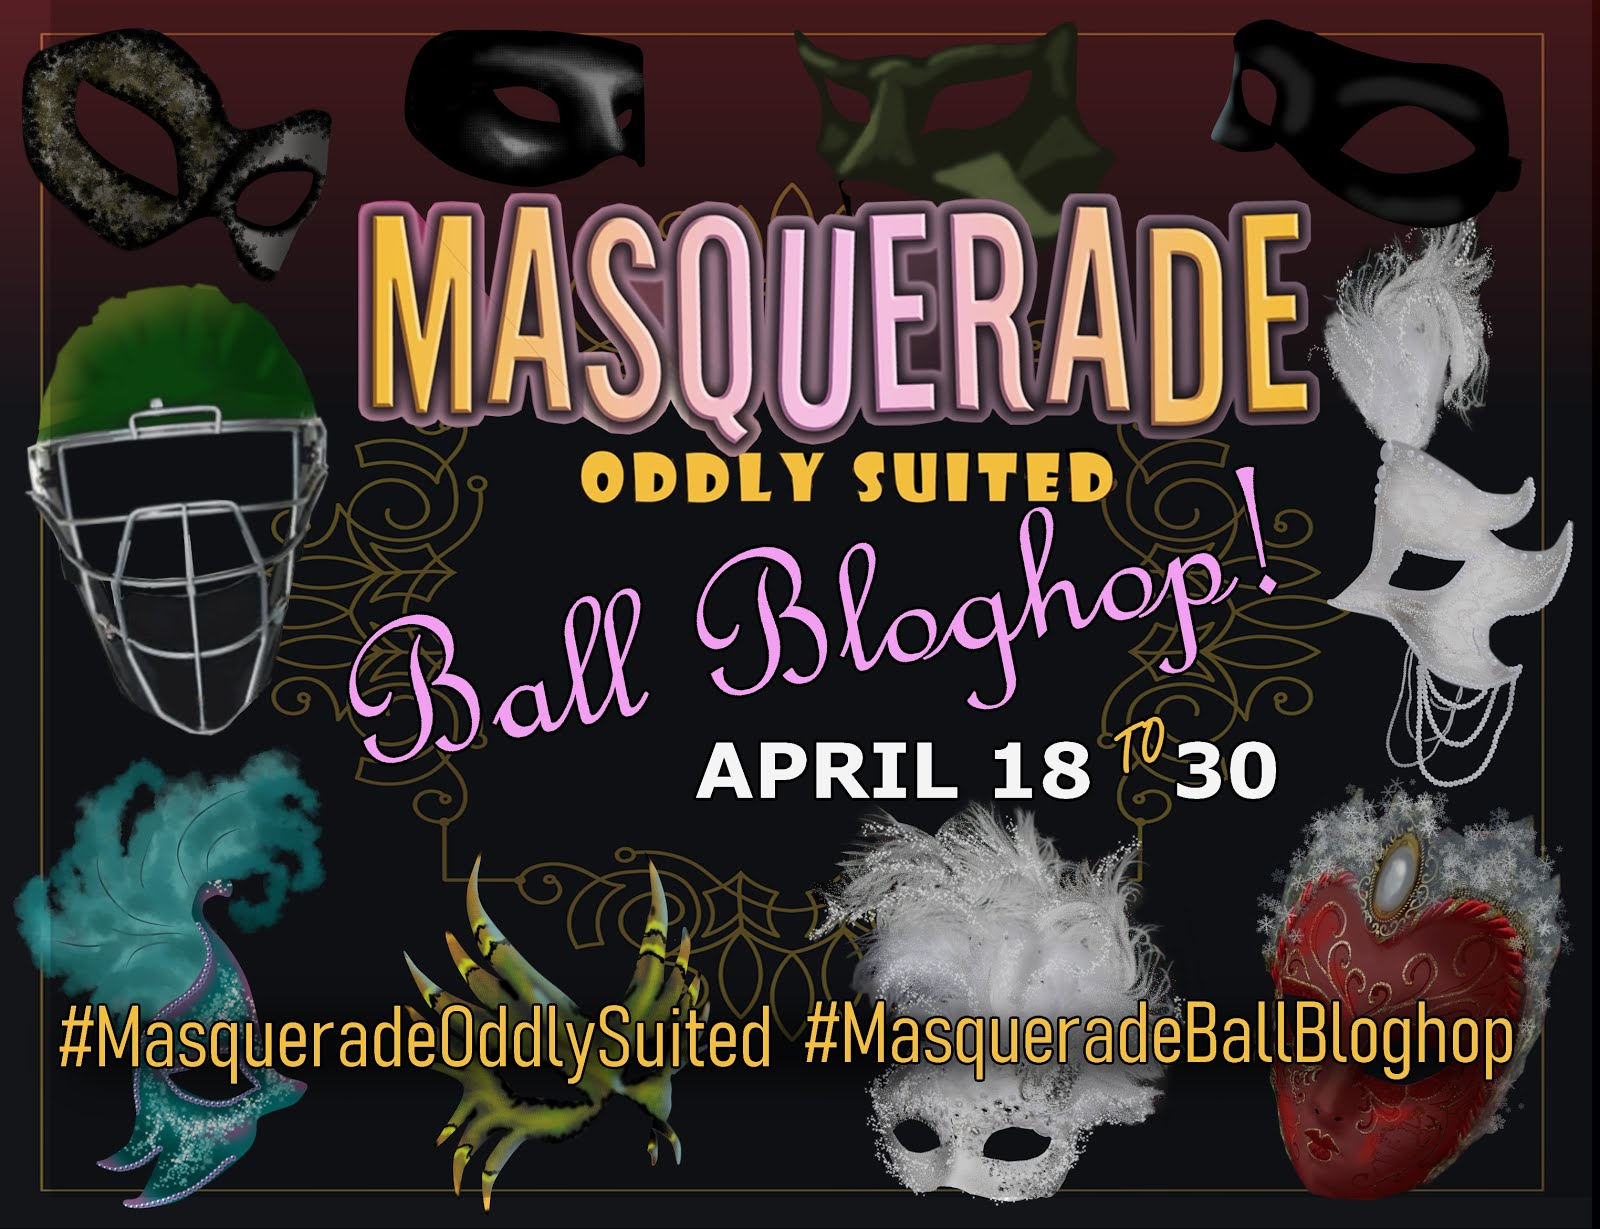 Masquerade Ball Bloghop